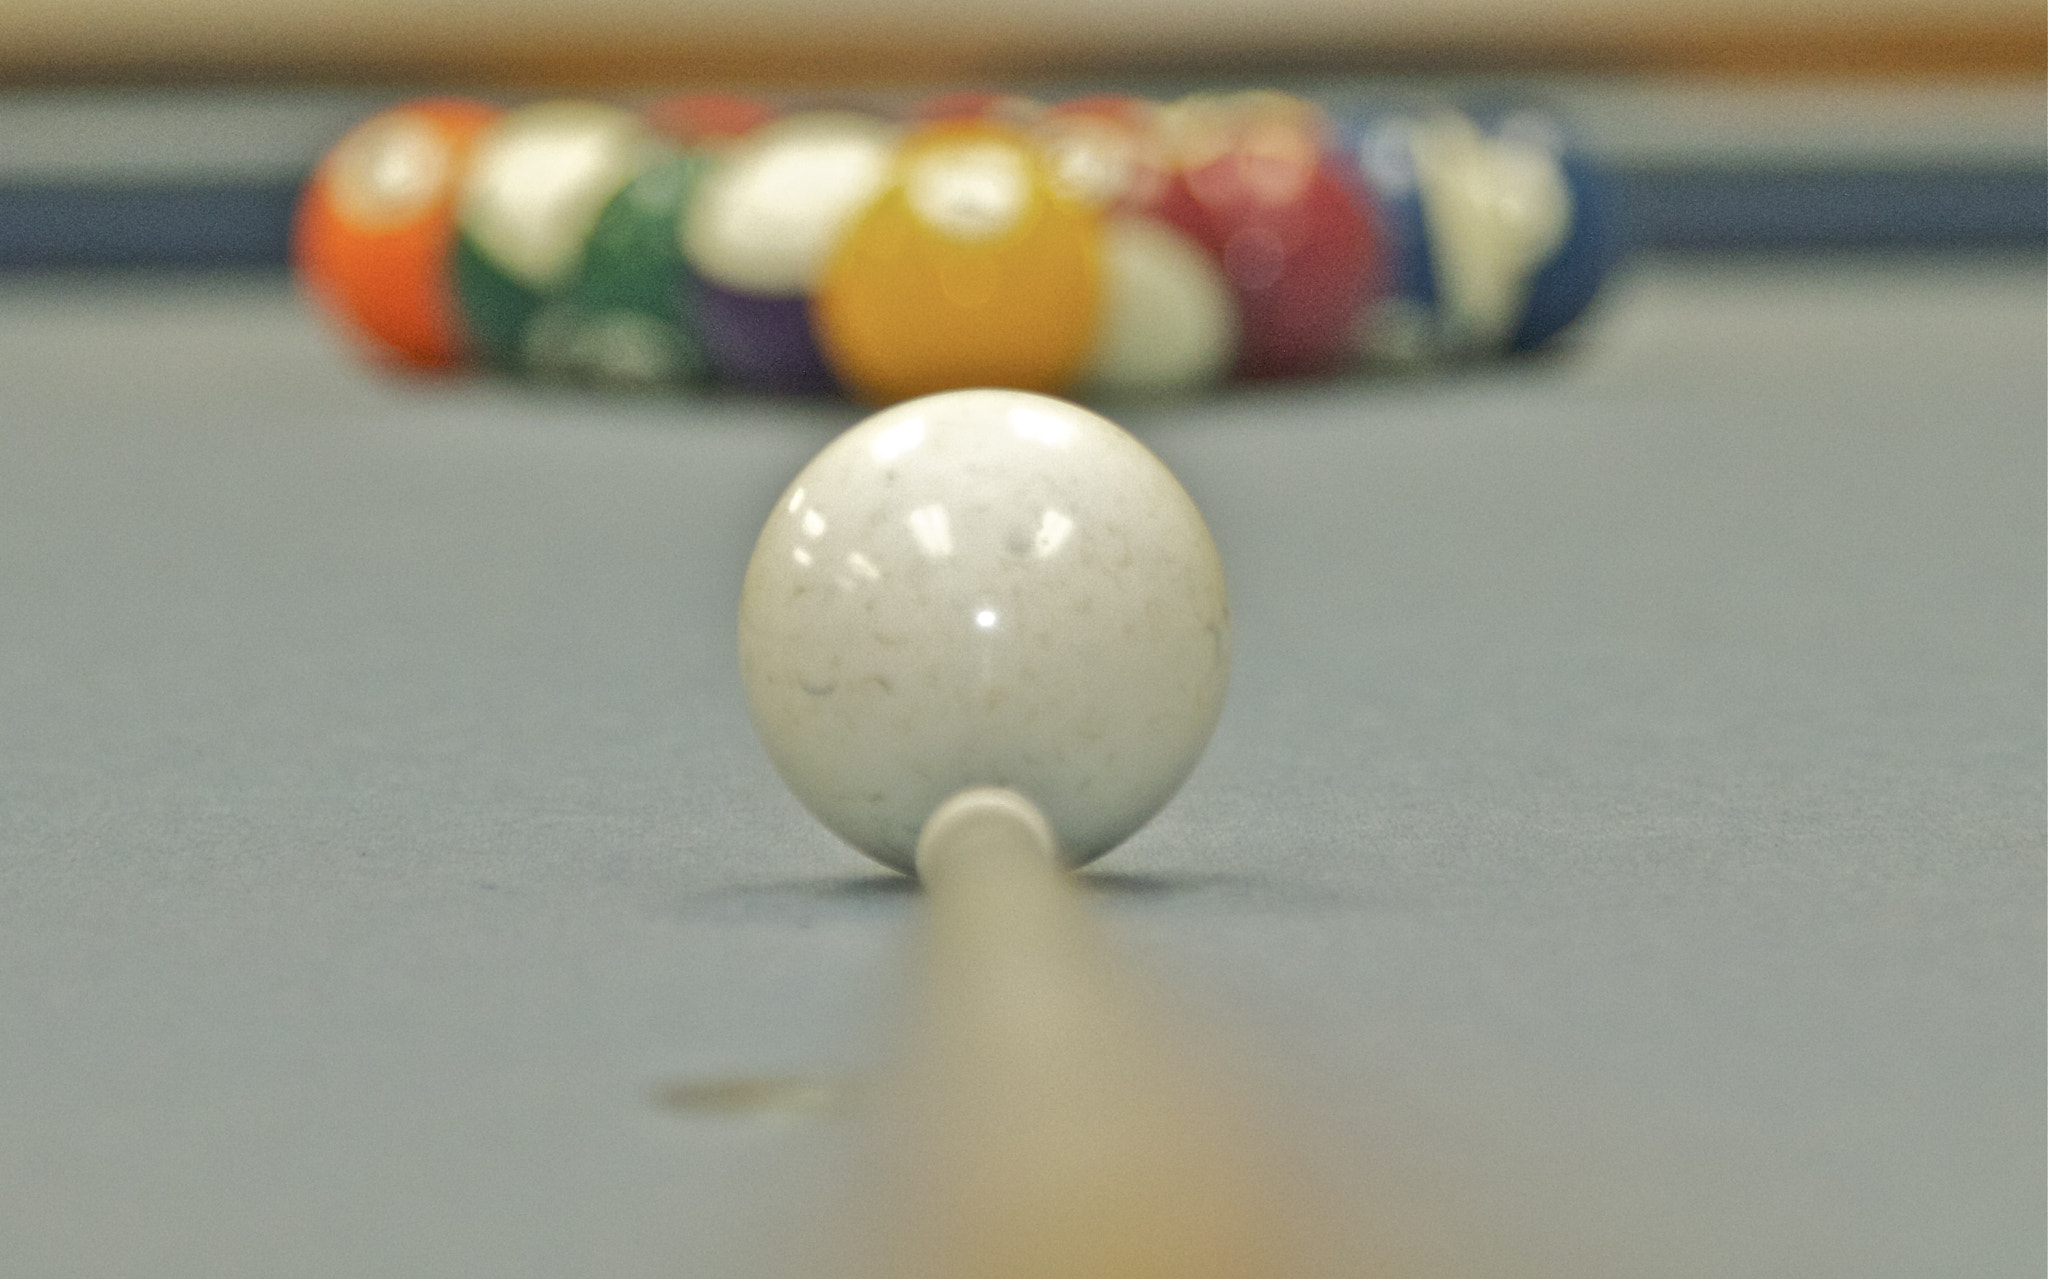 Photograph Cue Ball by Dallas Doyle on 500px